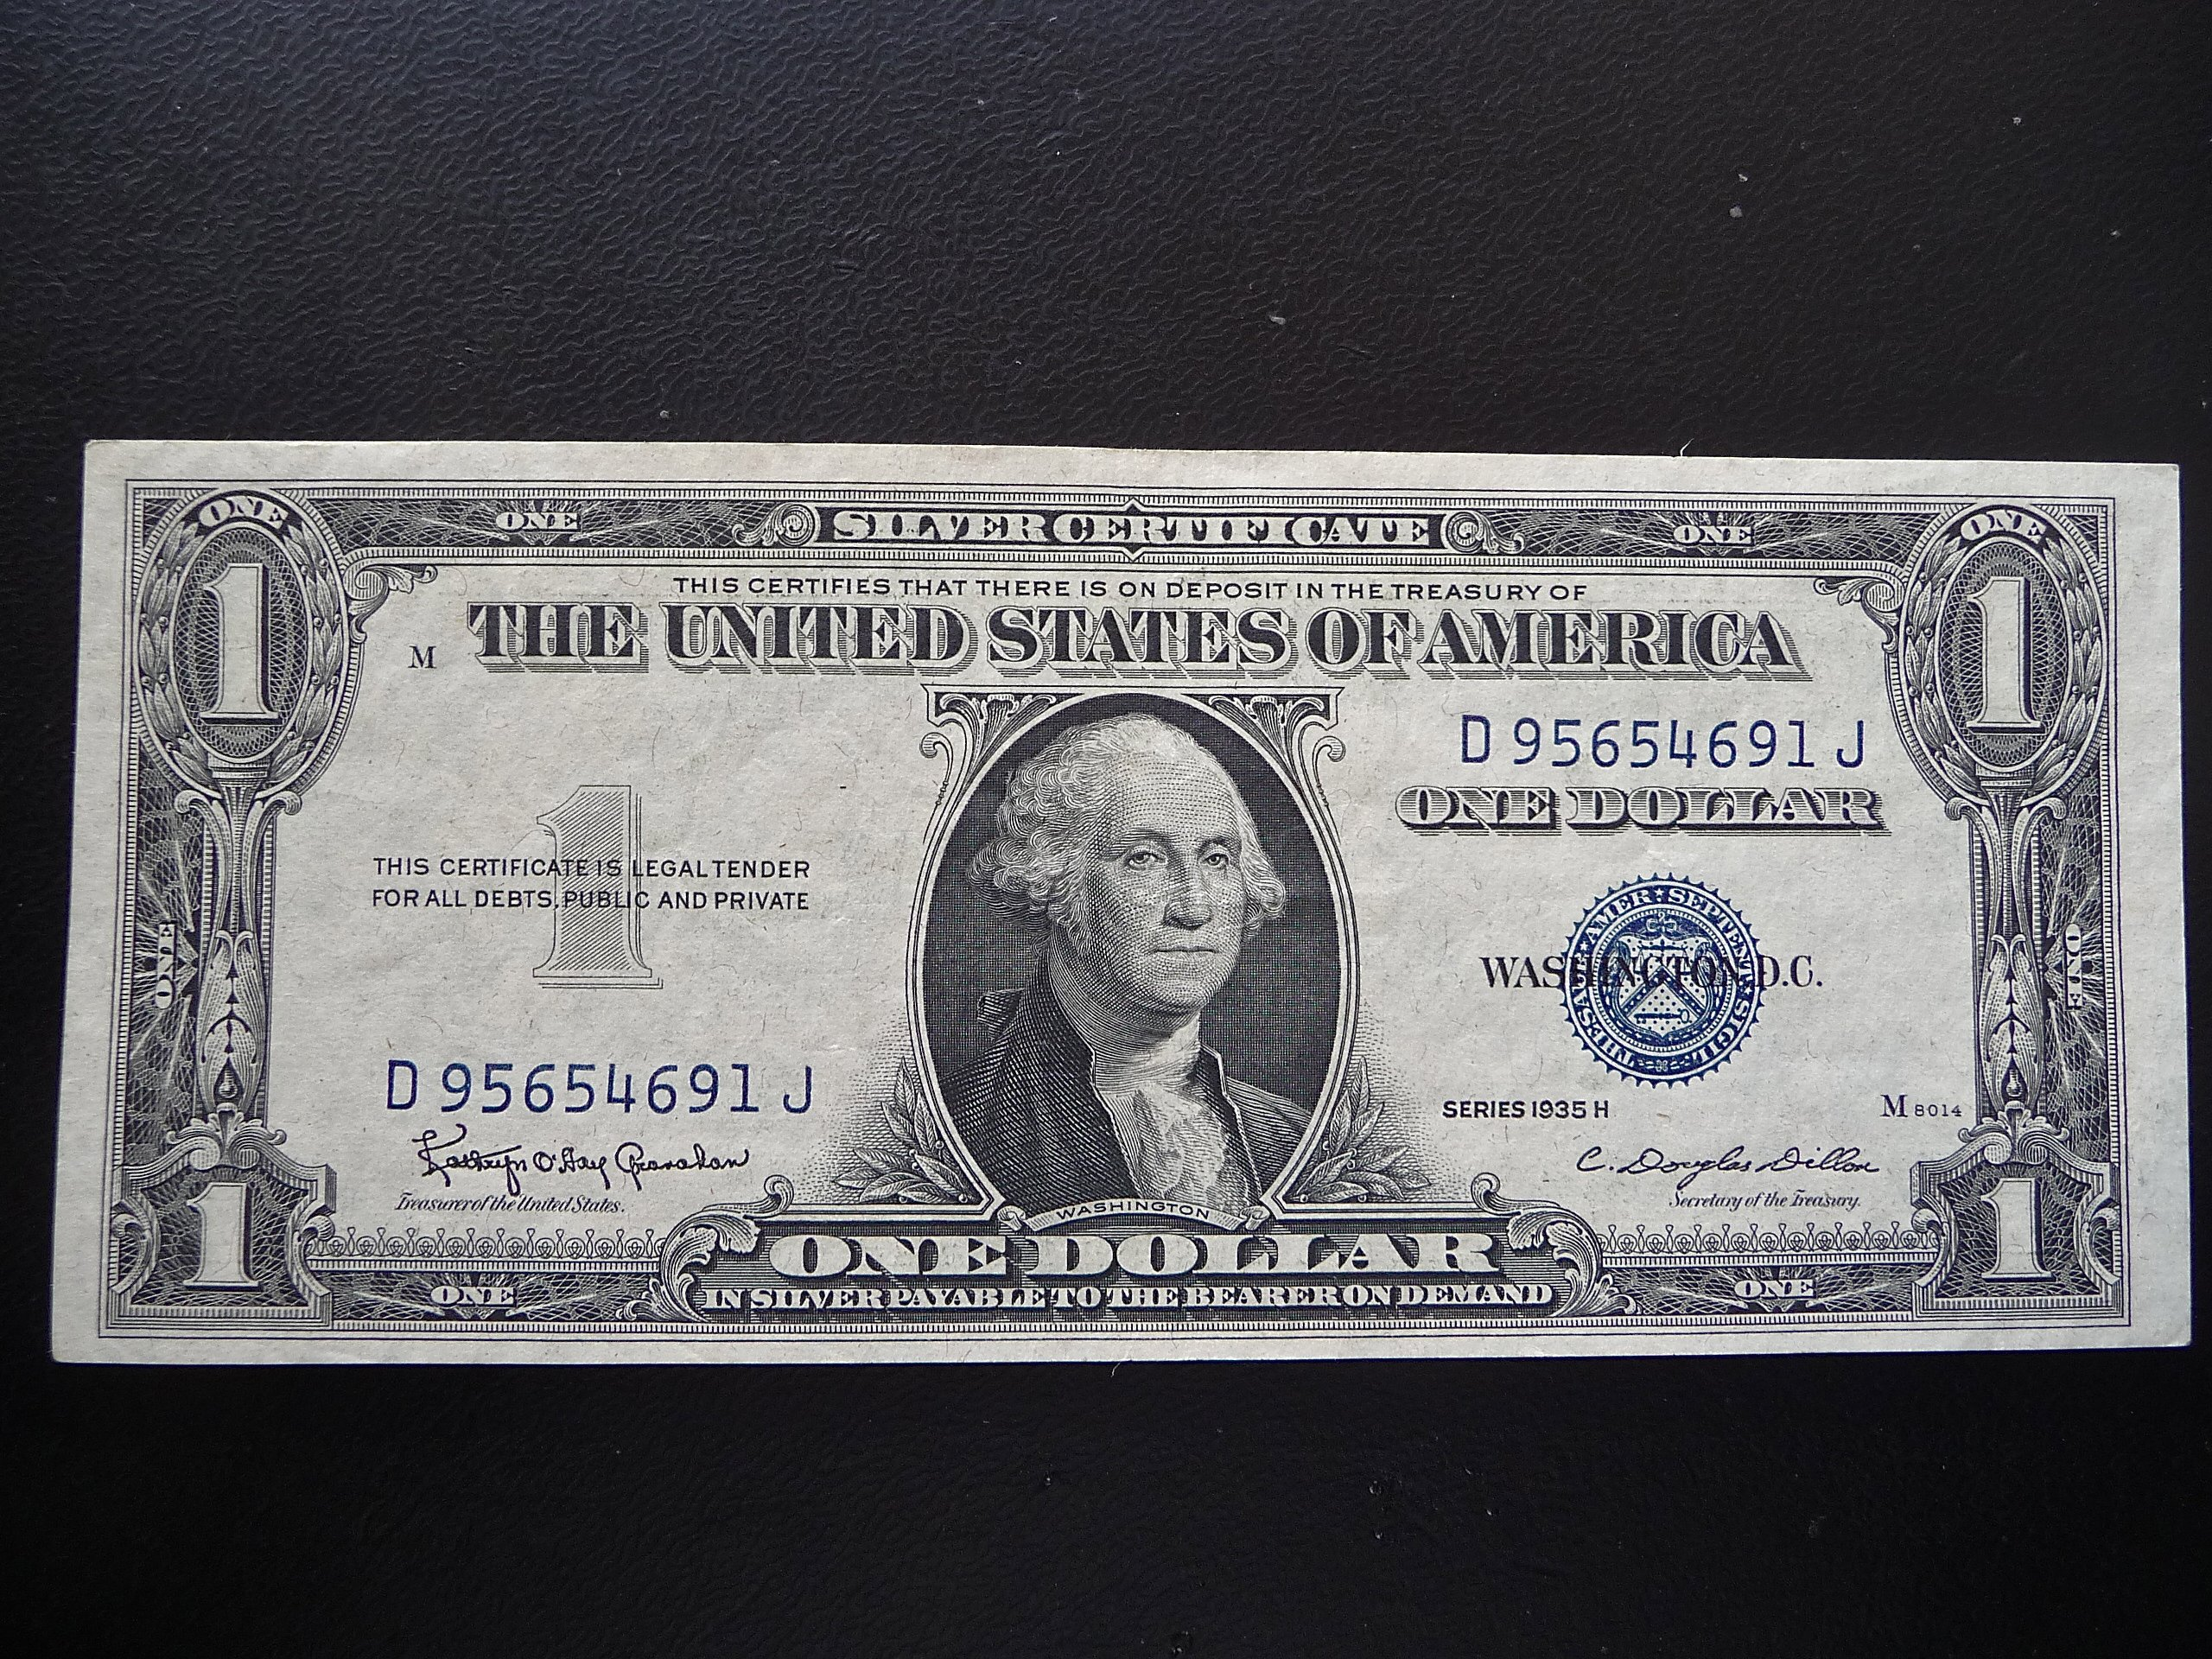 1935 h silver certificate 100 for sale buy now online item 1935 h silver certificate 100 xflitez Choice Image